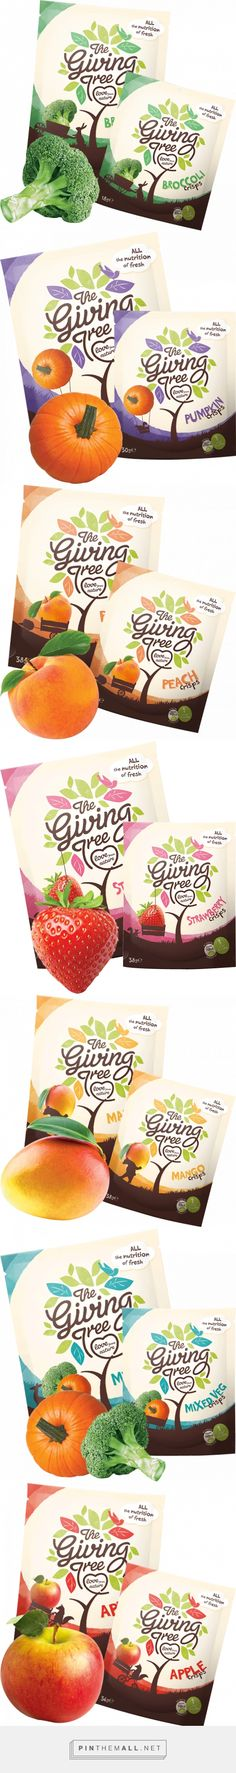 Products – The Giving Tree Snacks - created via https://pinthemall.net